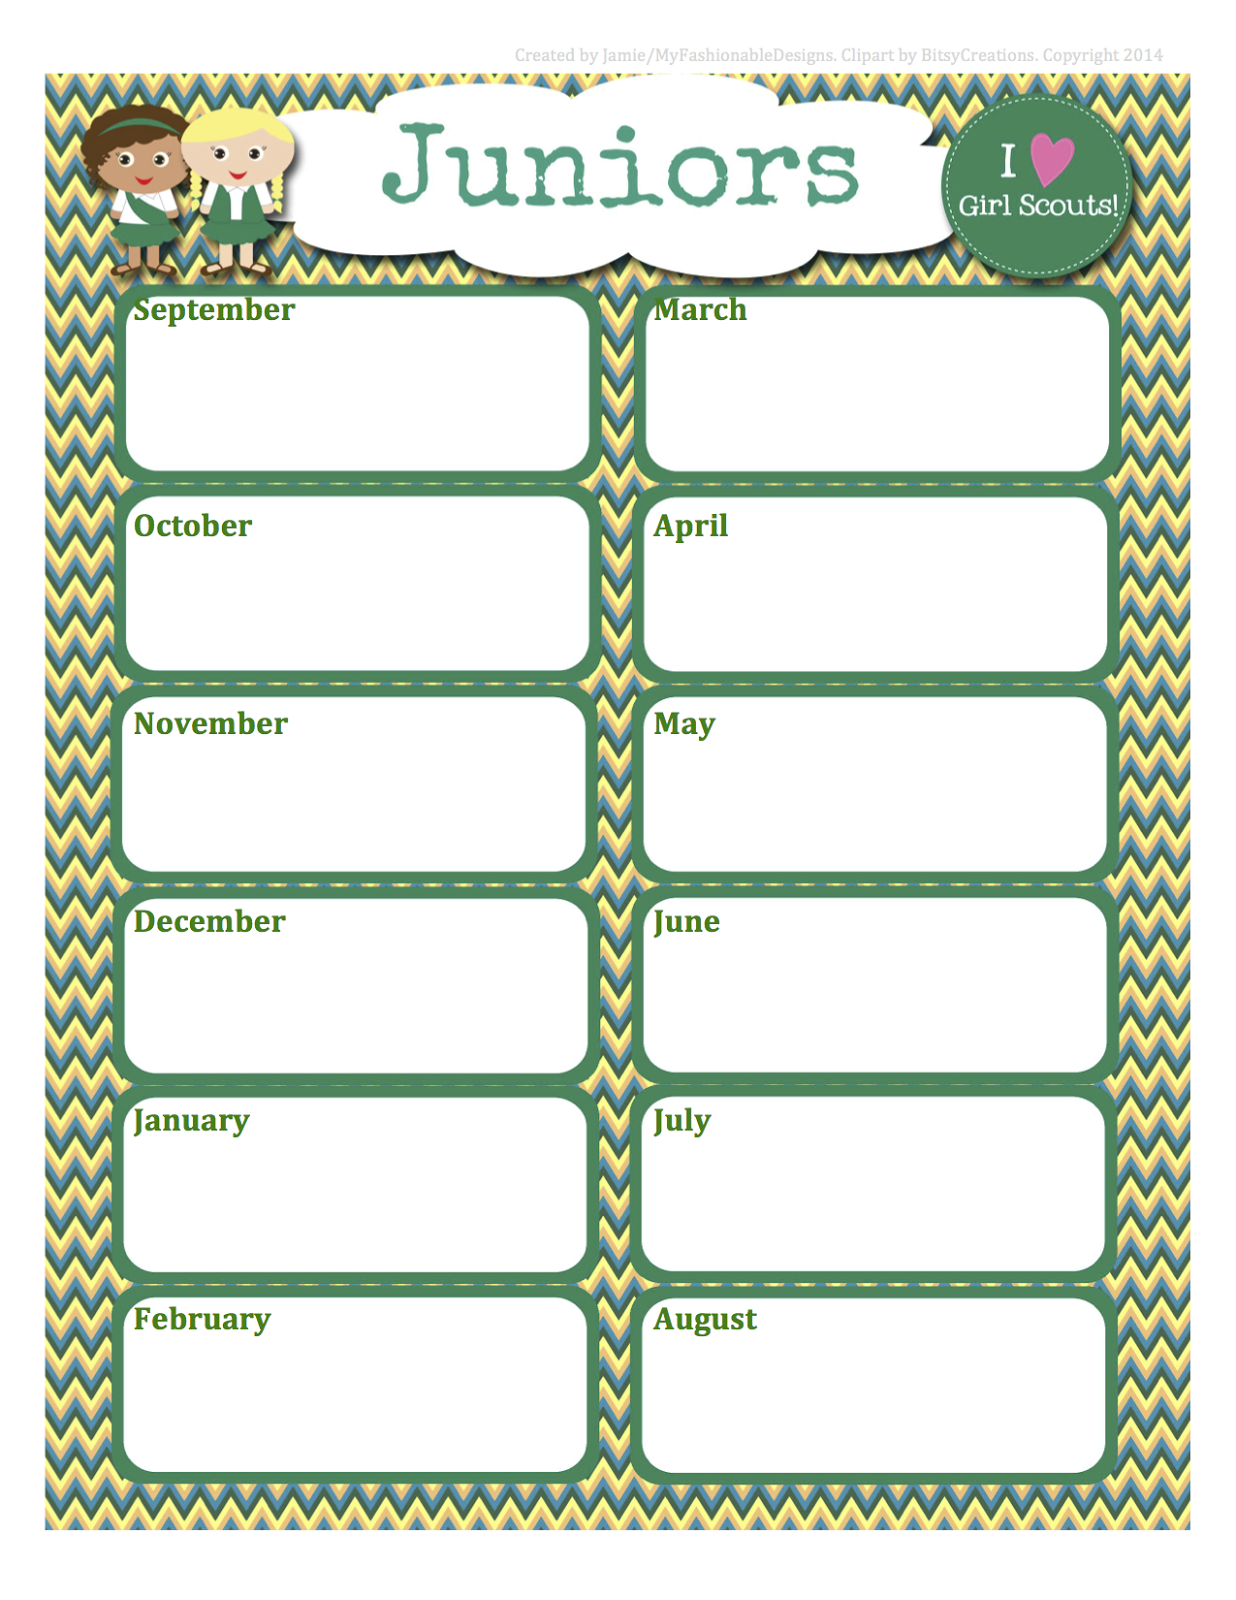 Girl Scouts Free Juniors Calendar